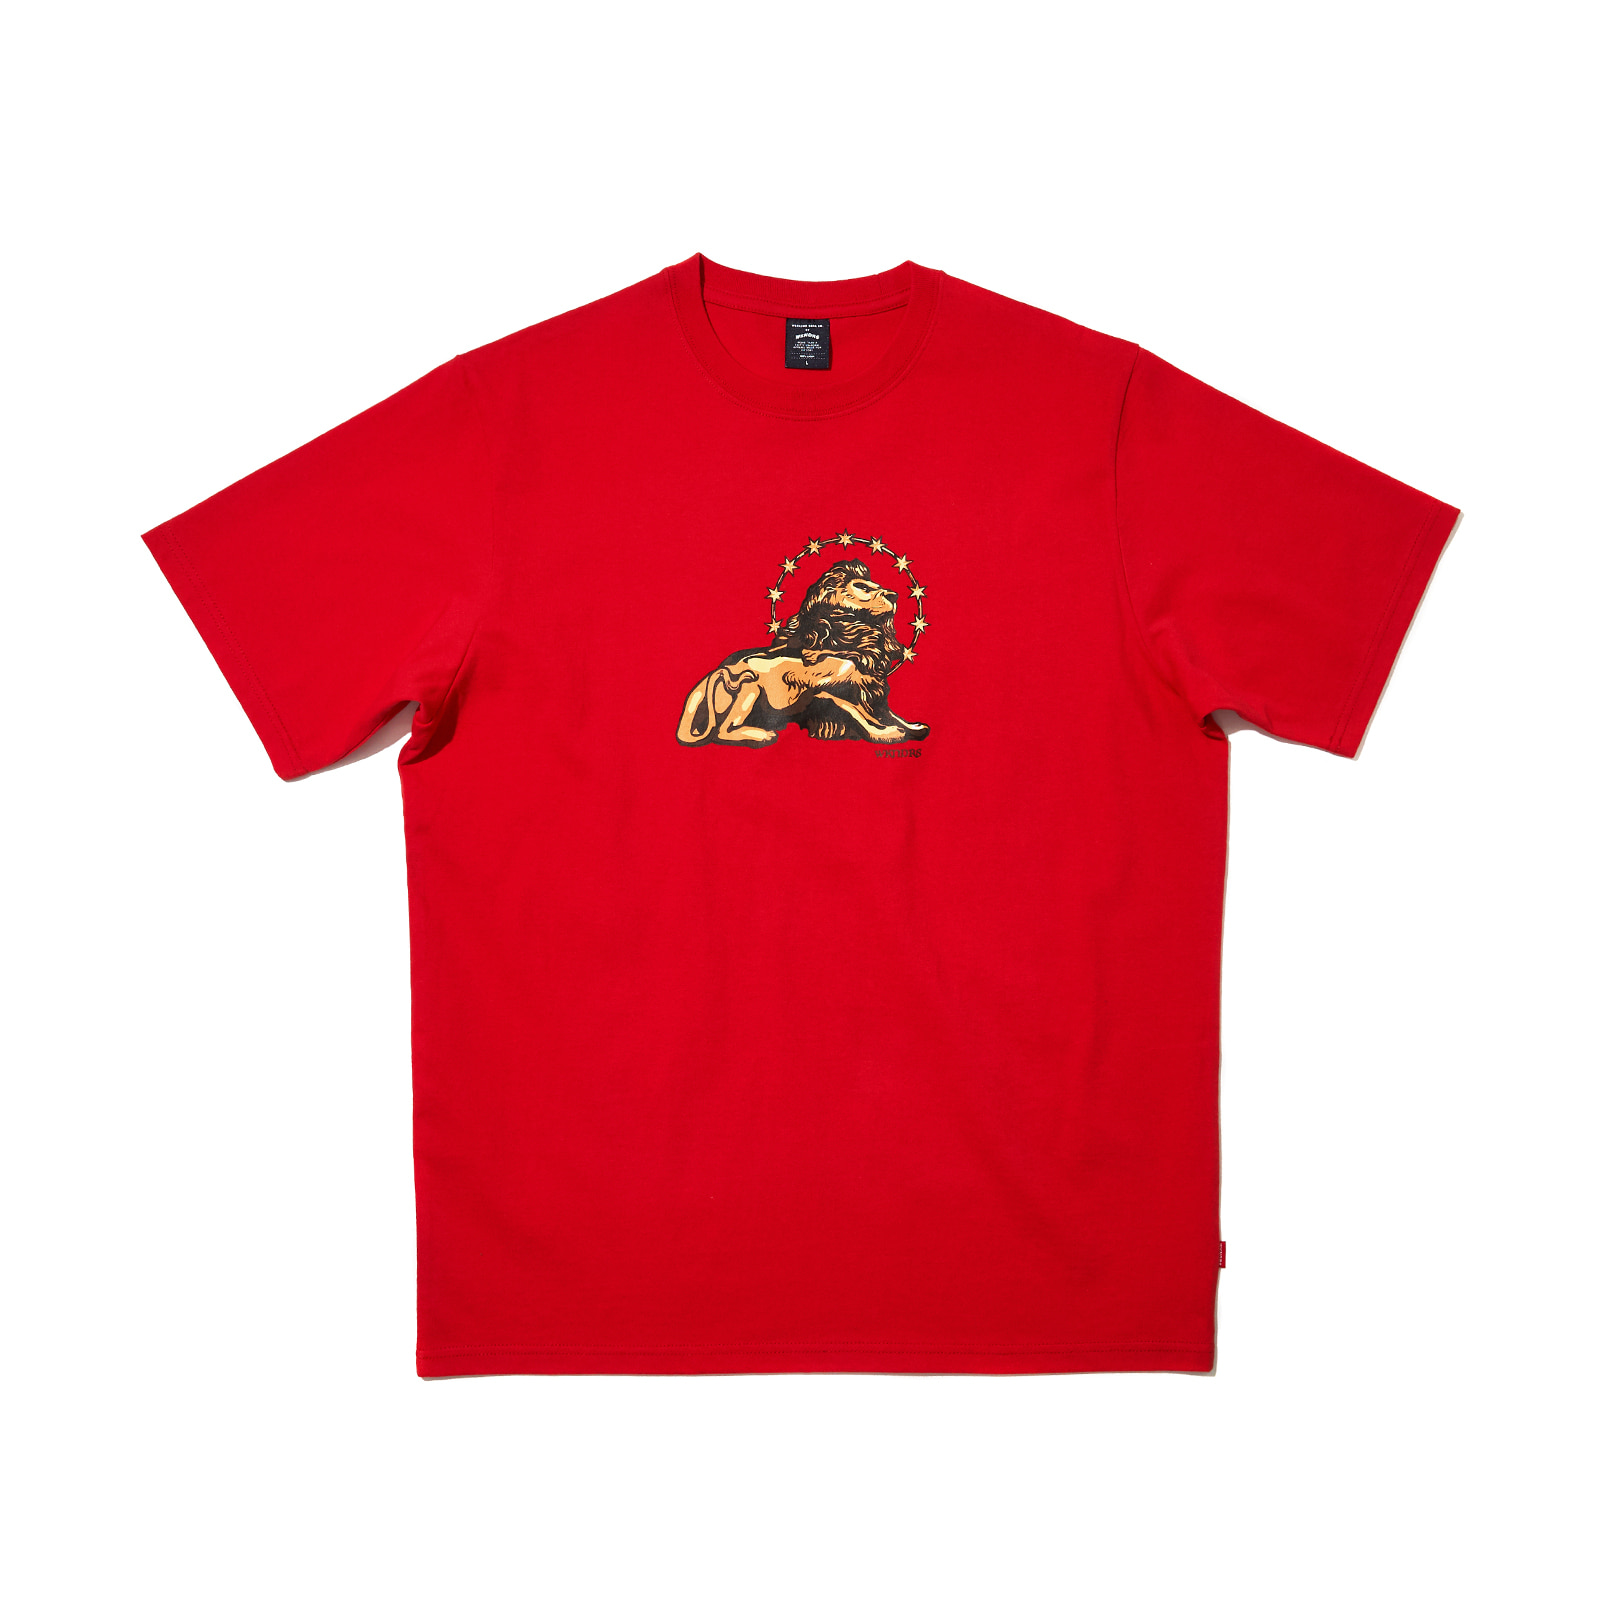 KING SS T-SHIRT (RED)